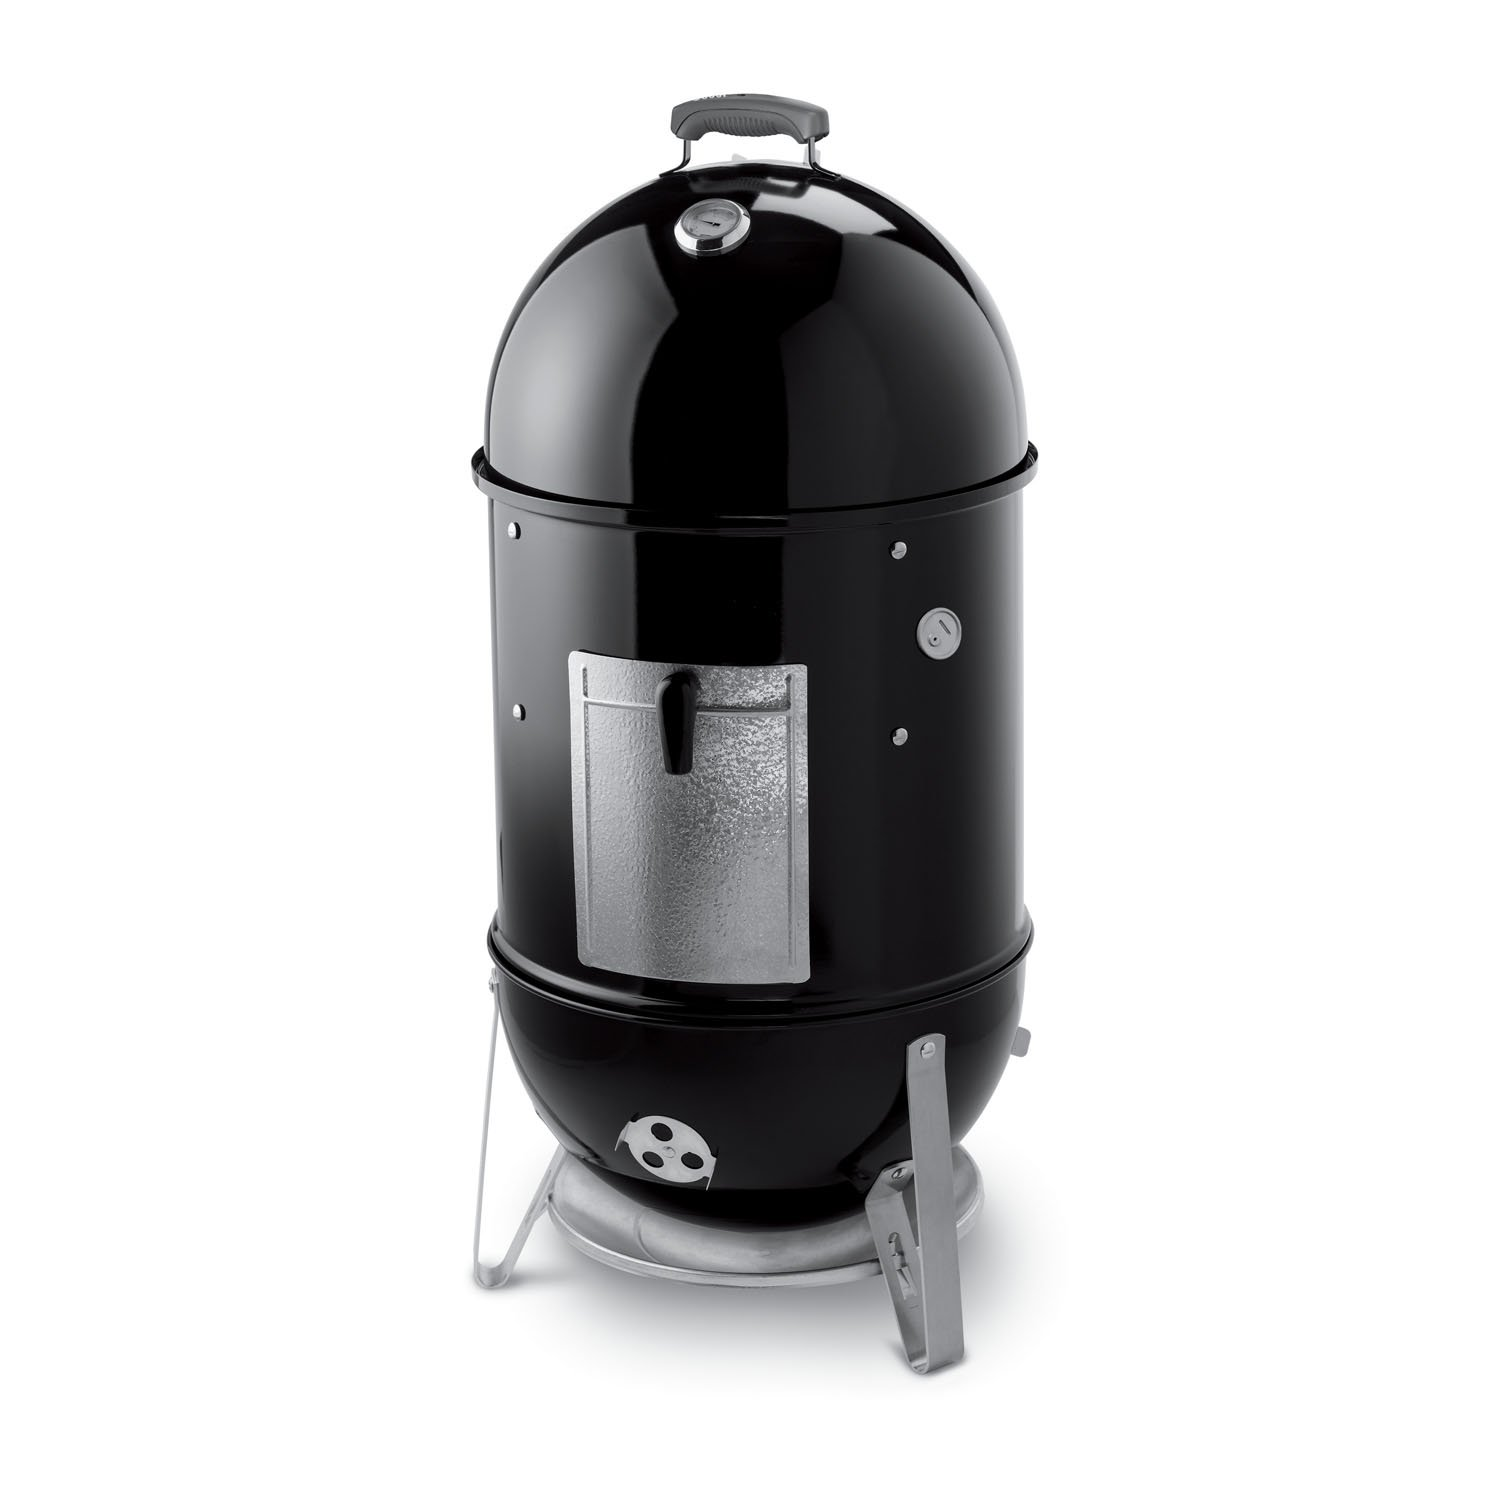 Weber Smokey Mountain Cooker 18 Inch Smoker - best smokers for beginners